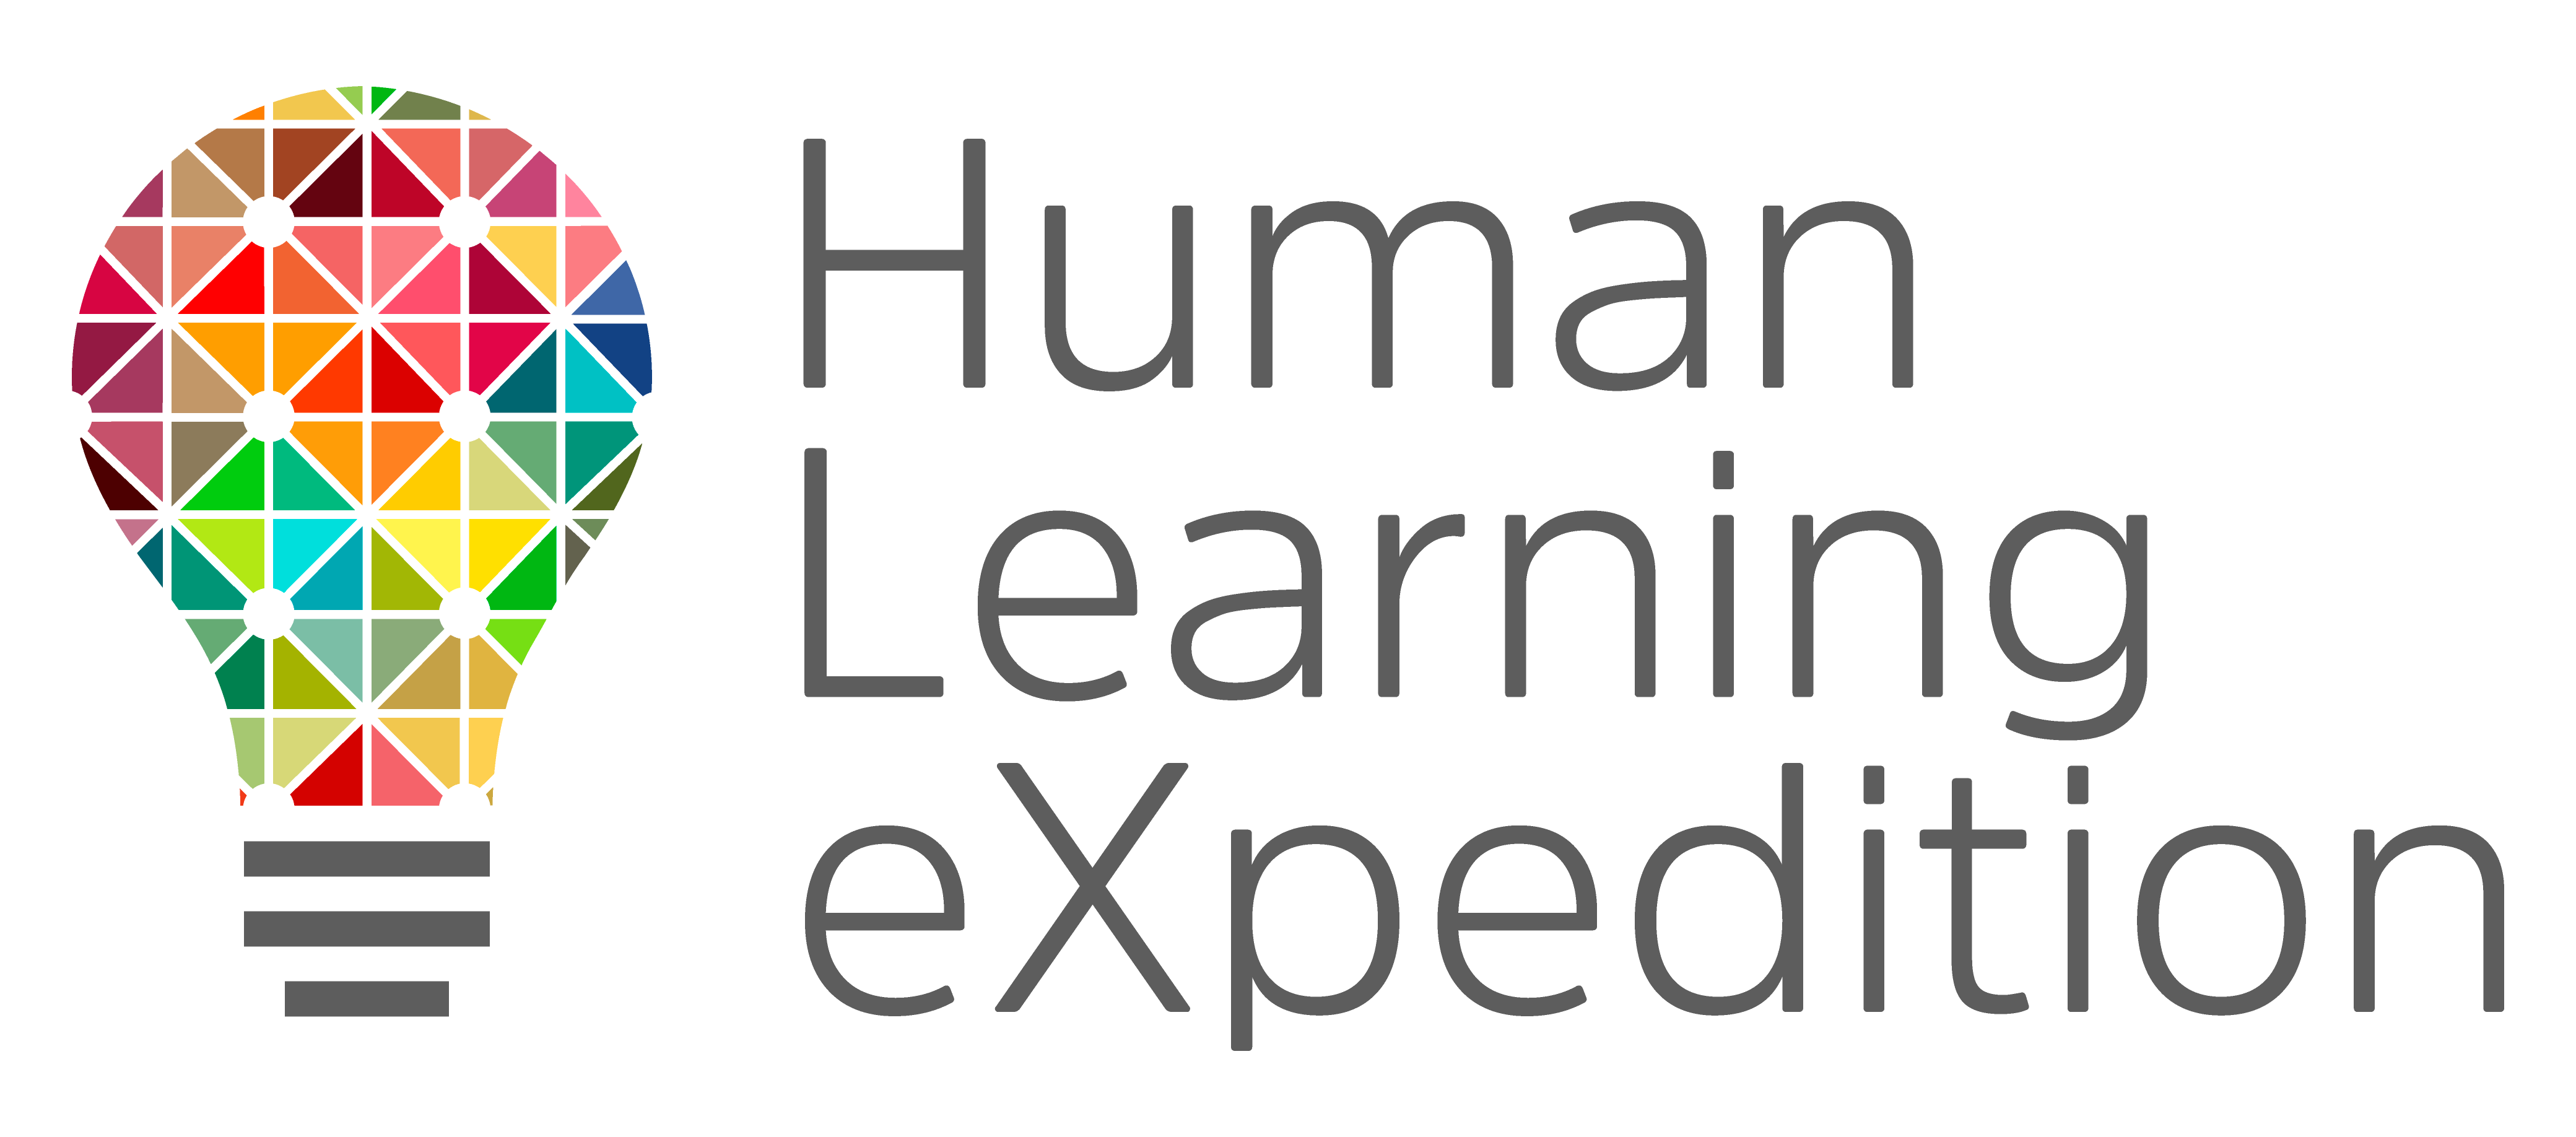 Human Learning eXpedition